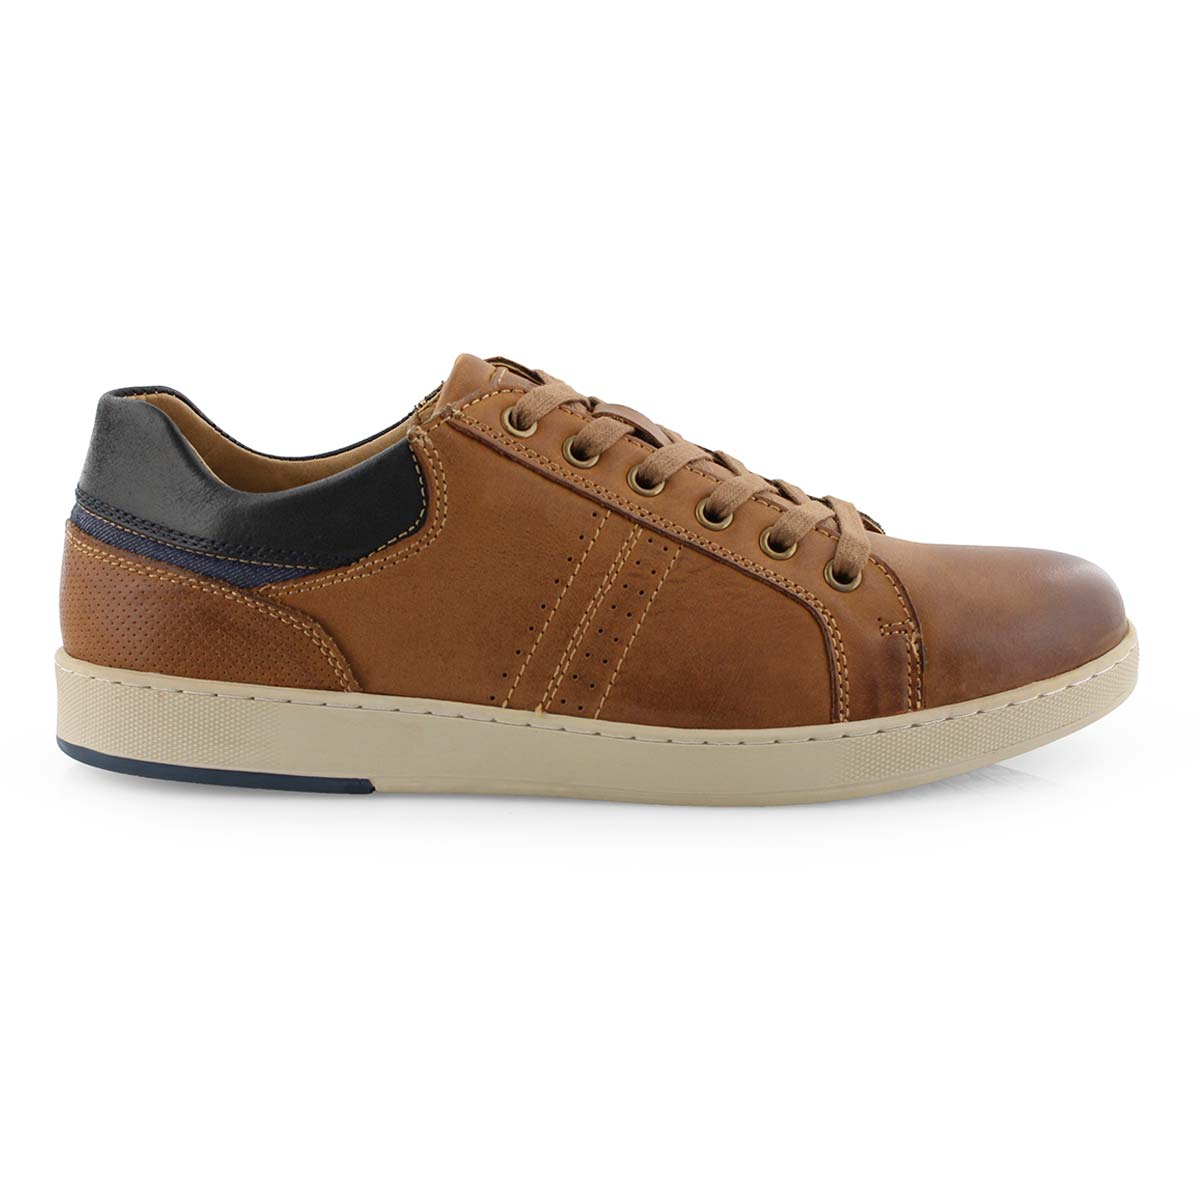 Mns Ebbing dk tan lace up casual sneaker